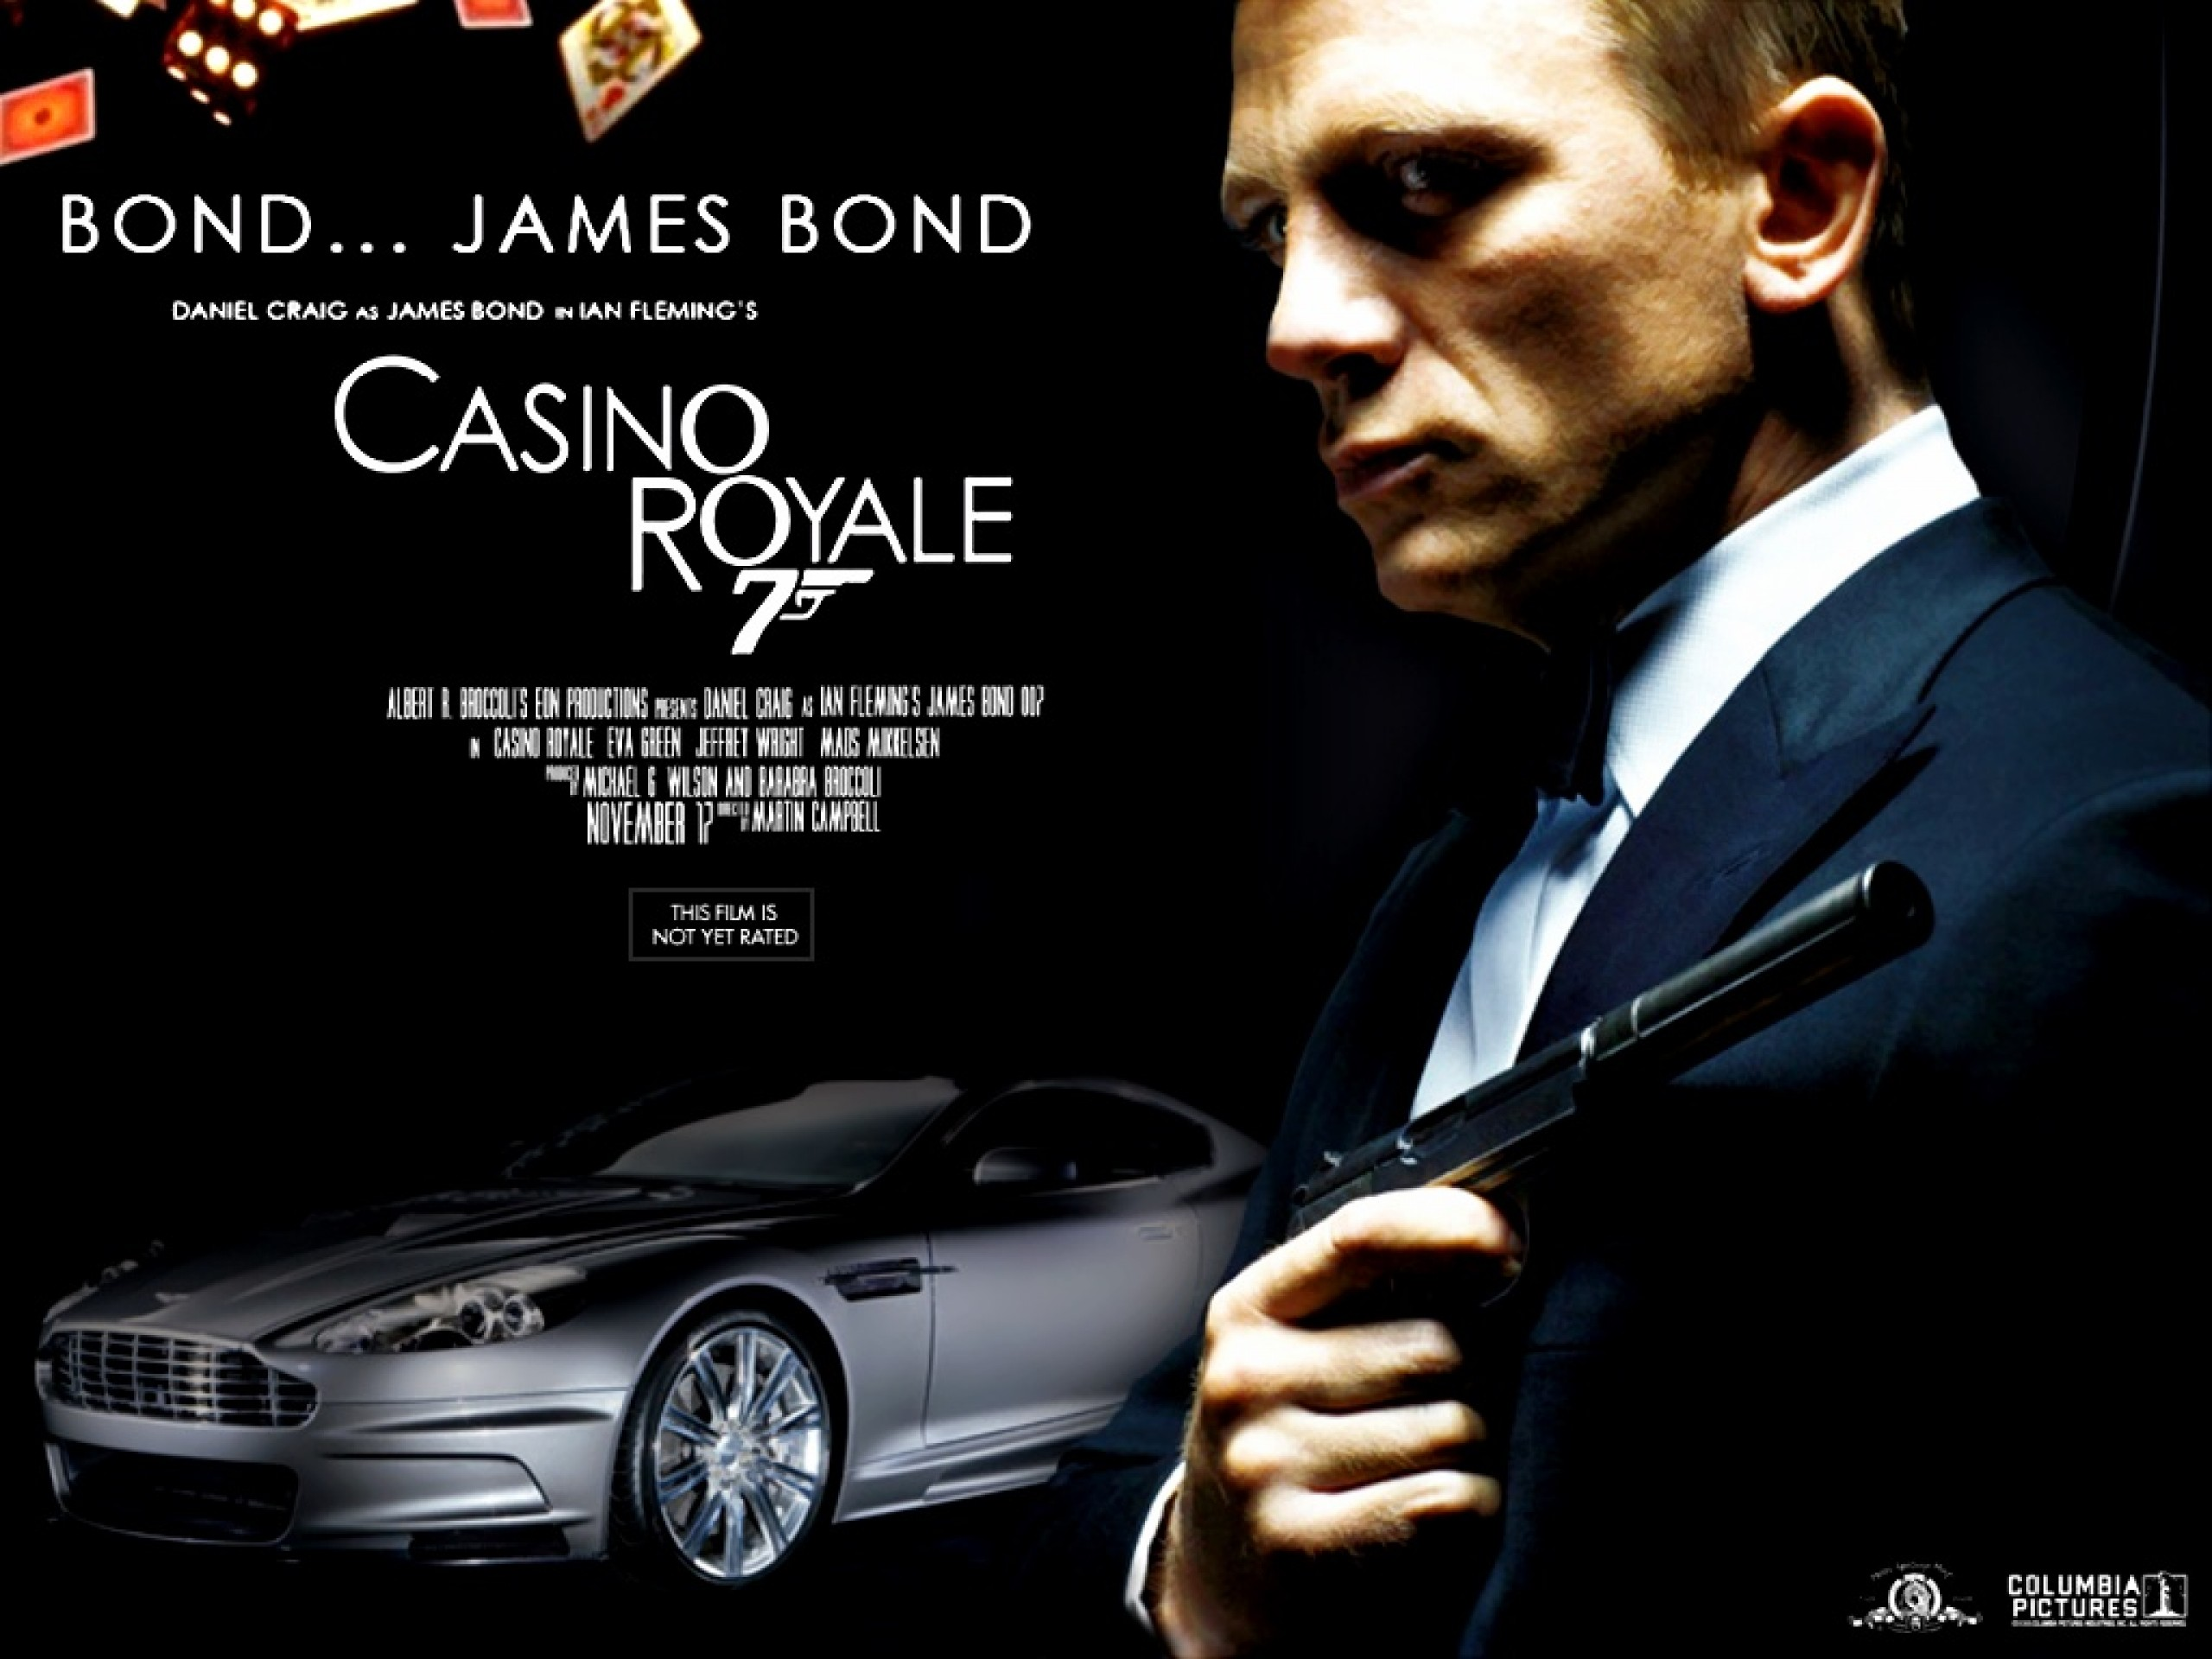 casino royale james bond full movie online online casino kostenlos